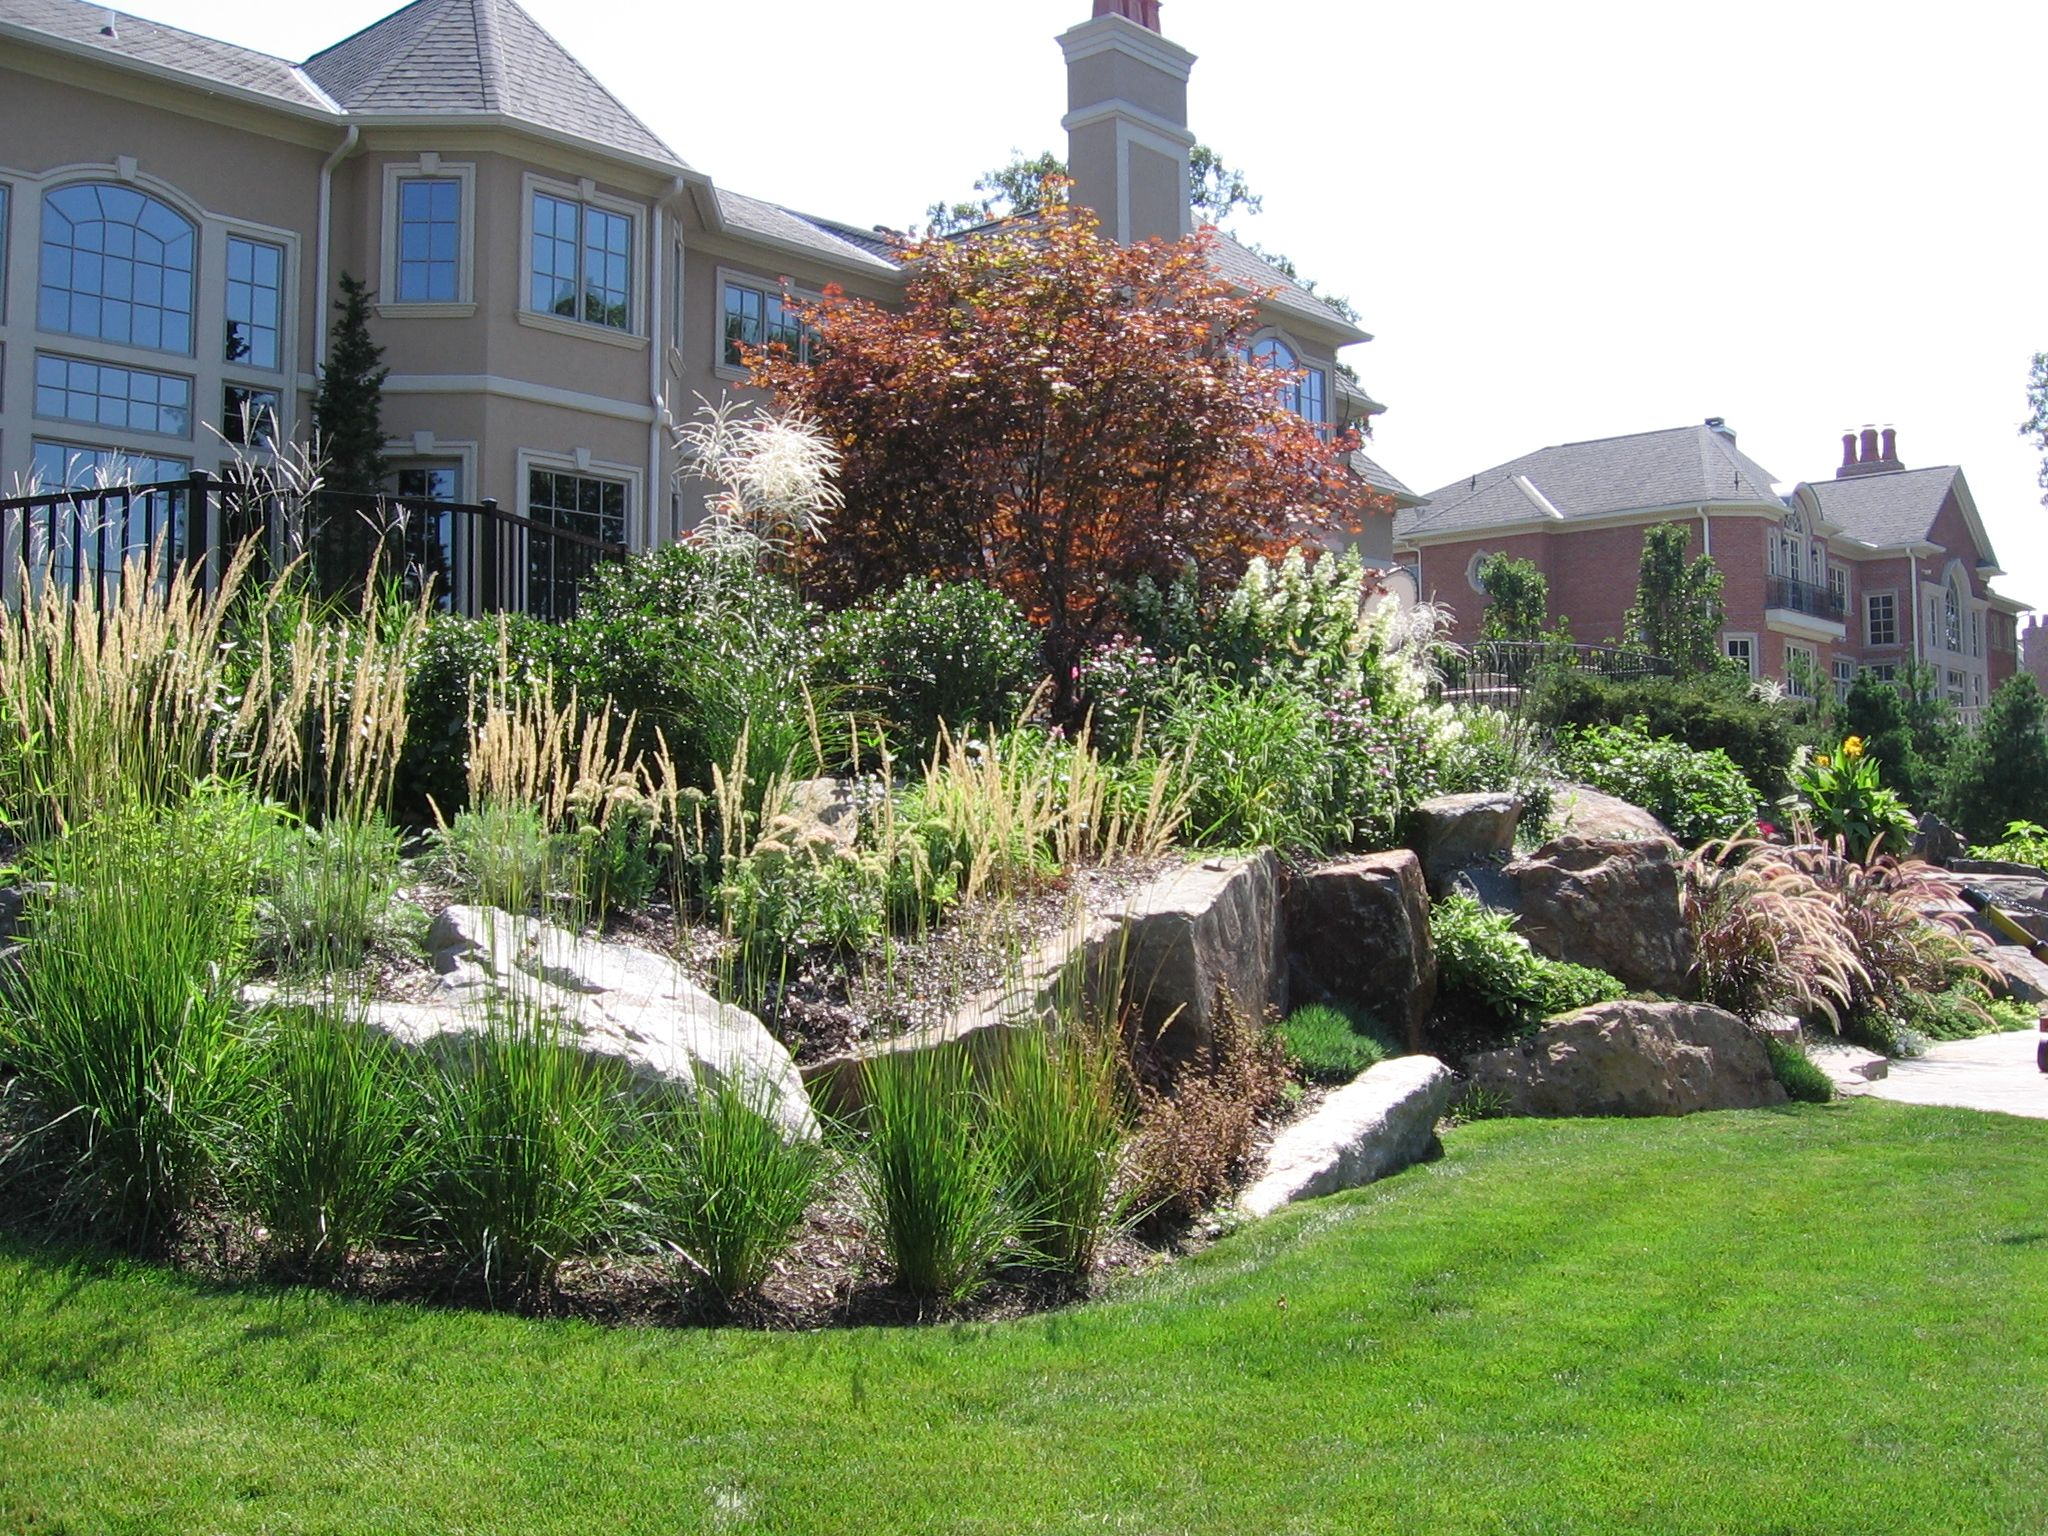 Landscaping georgia - Google Search | Landscape design ...